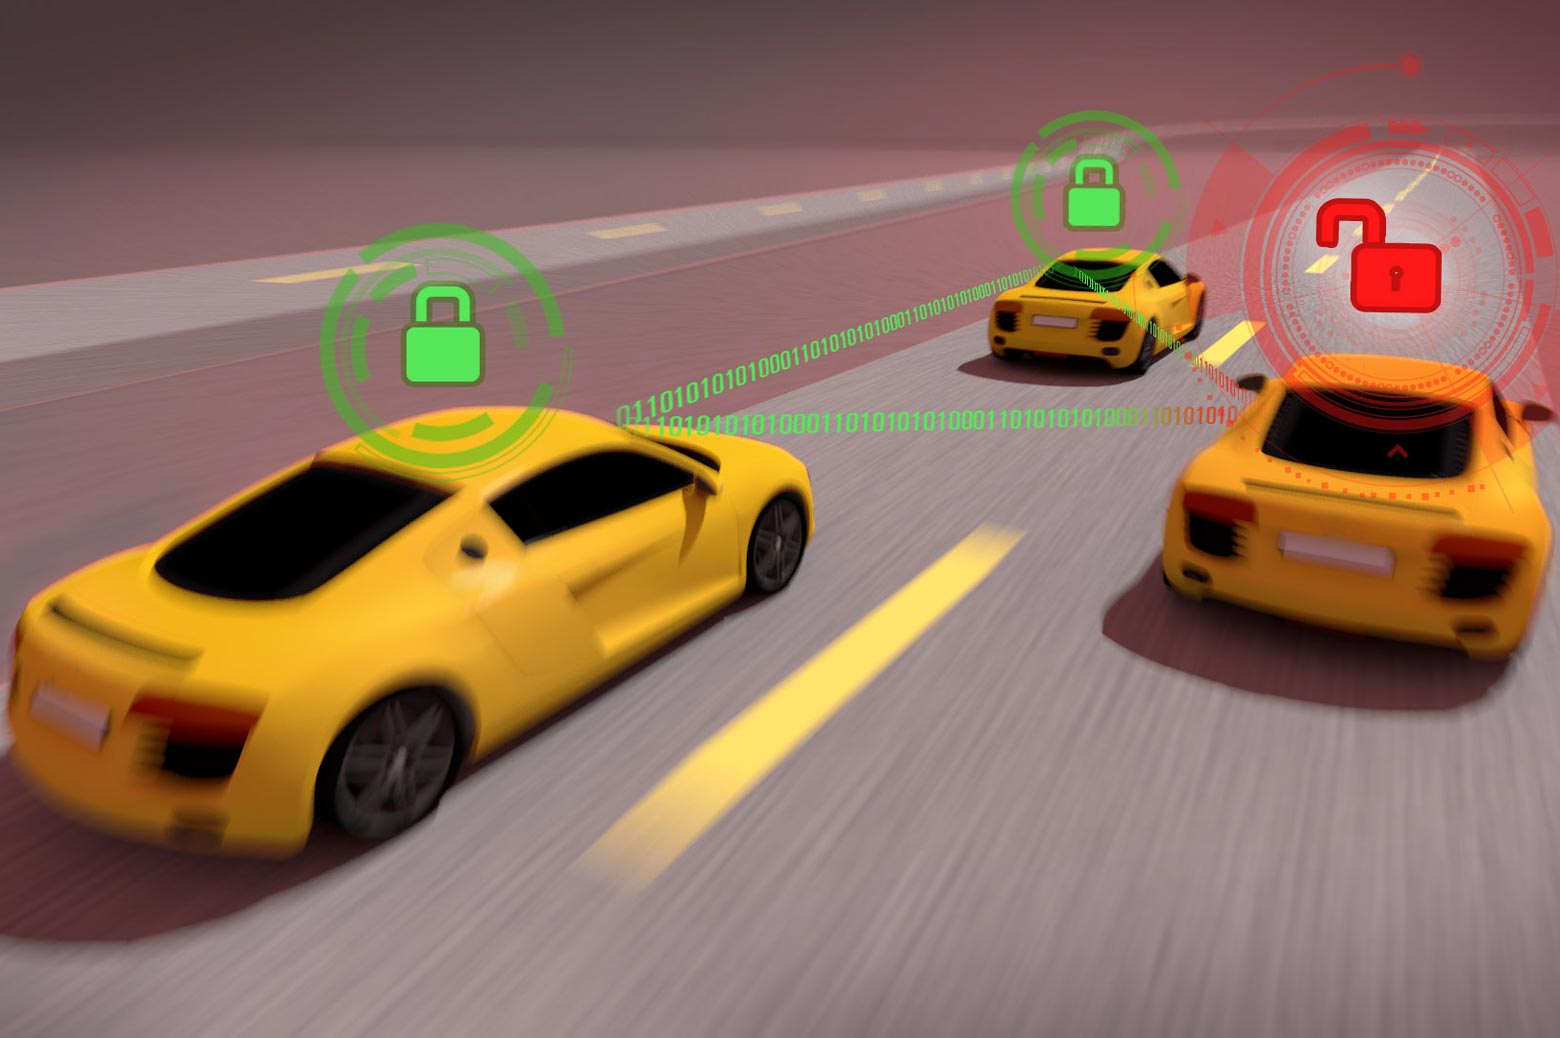 a graphic showing three cars connected through identification tech